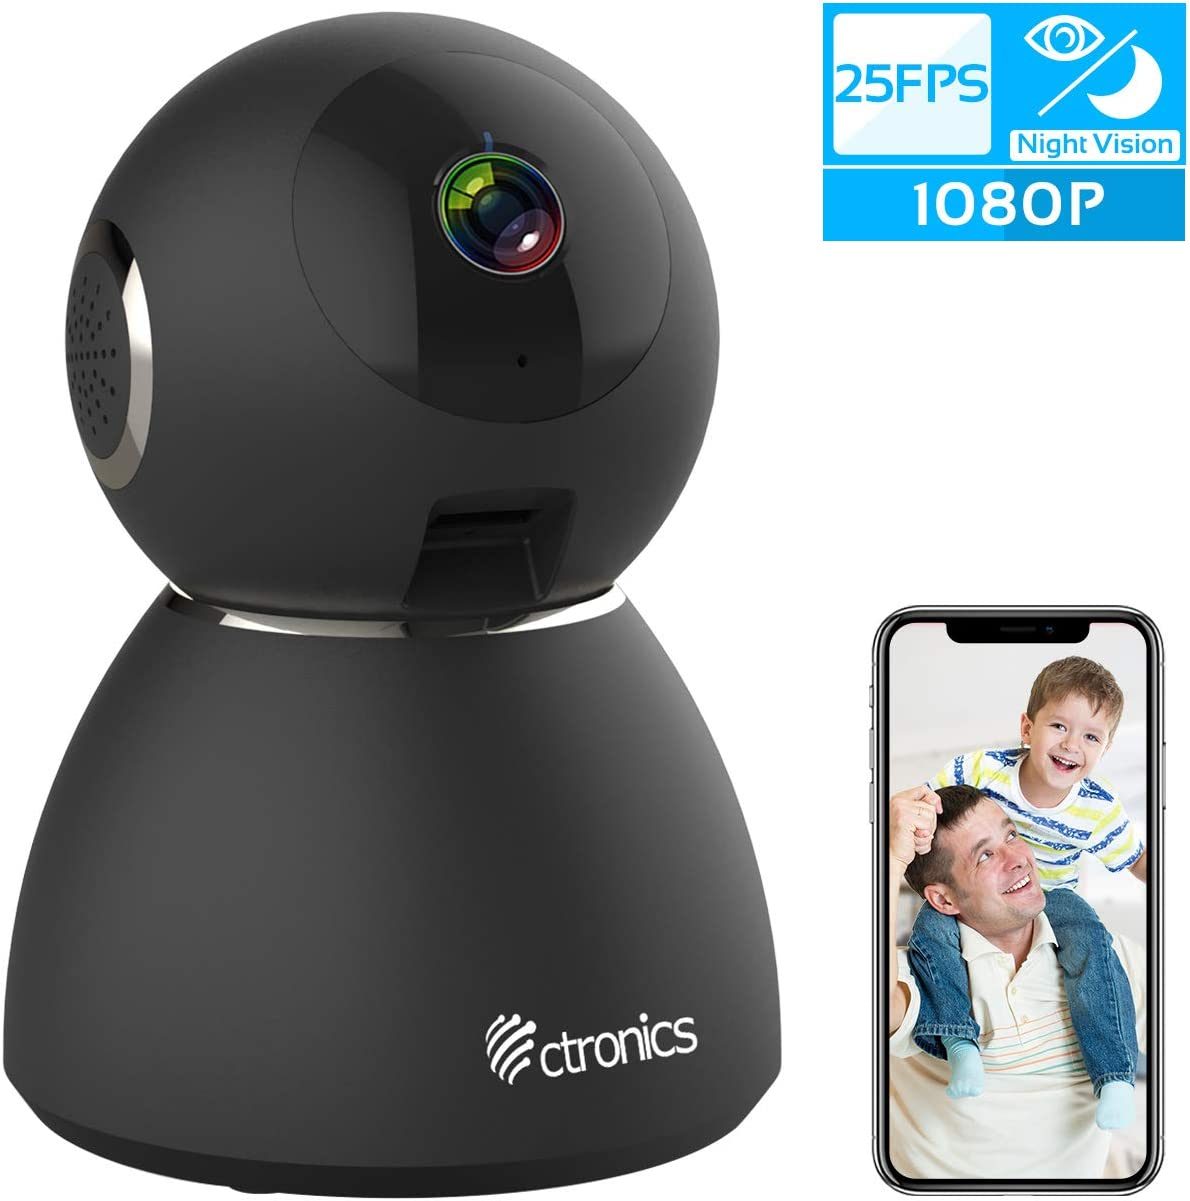 25fps 1080P WiFi Security Camera Pet Monitor, Ctronics Security Camera with Upgraded Night Vision, Motion Sound Detection, Two-Way Audio for Baby, Pet, Home Surveillance